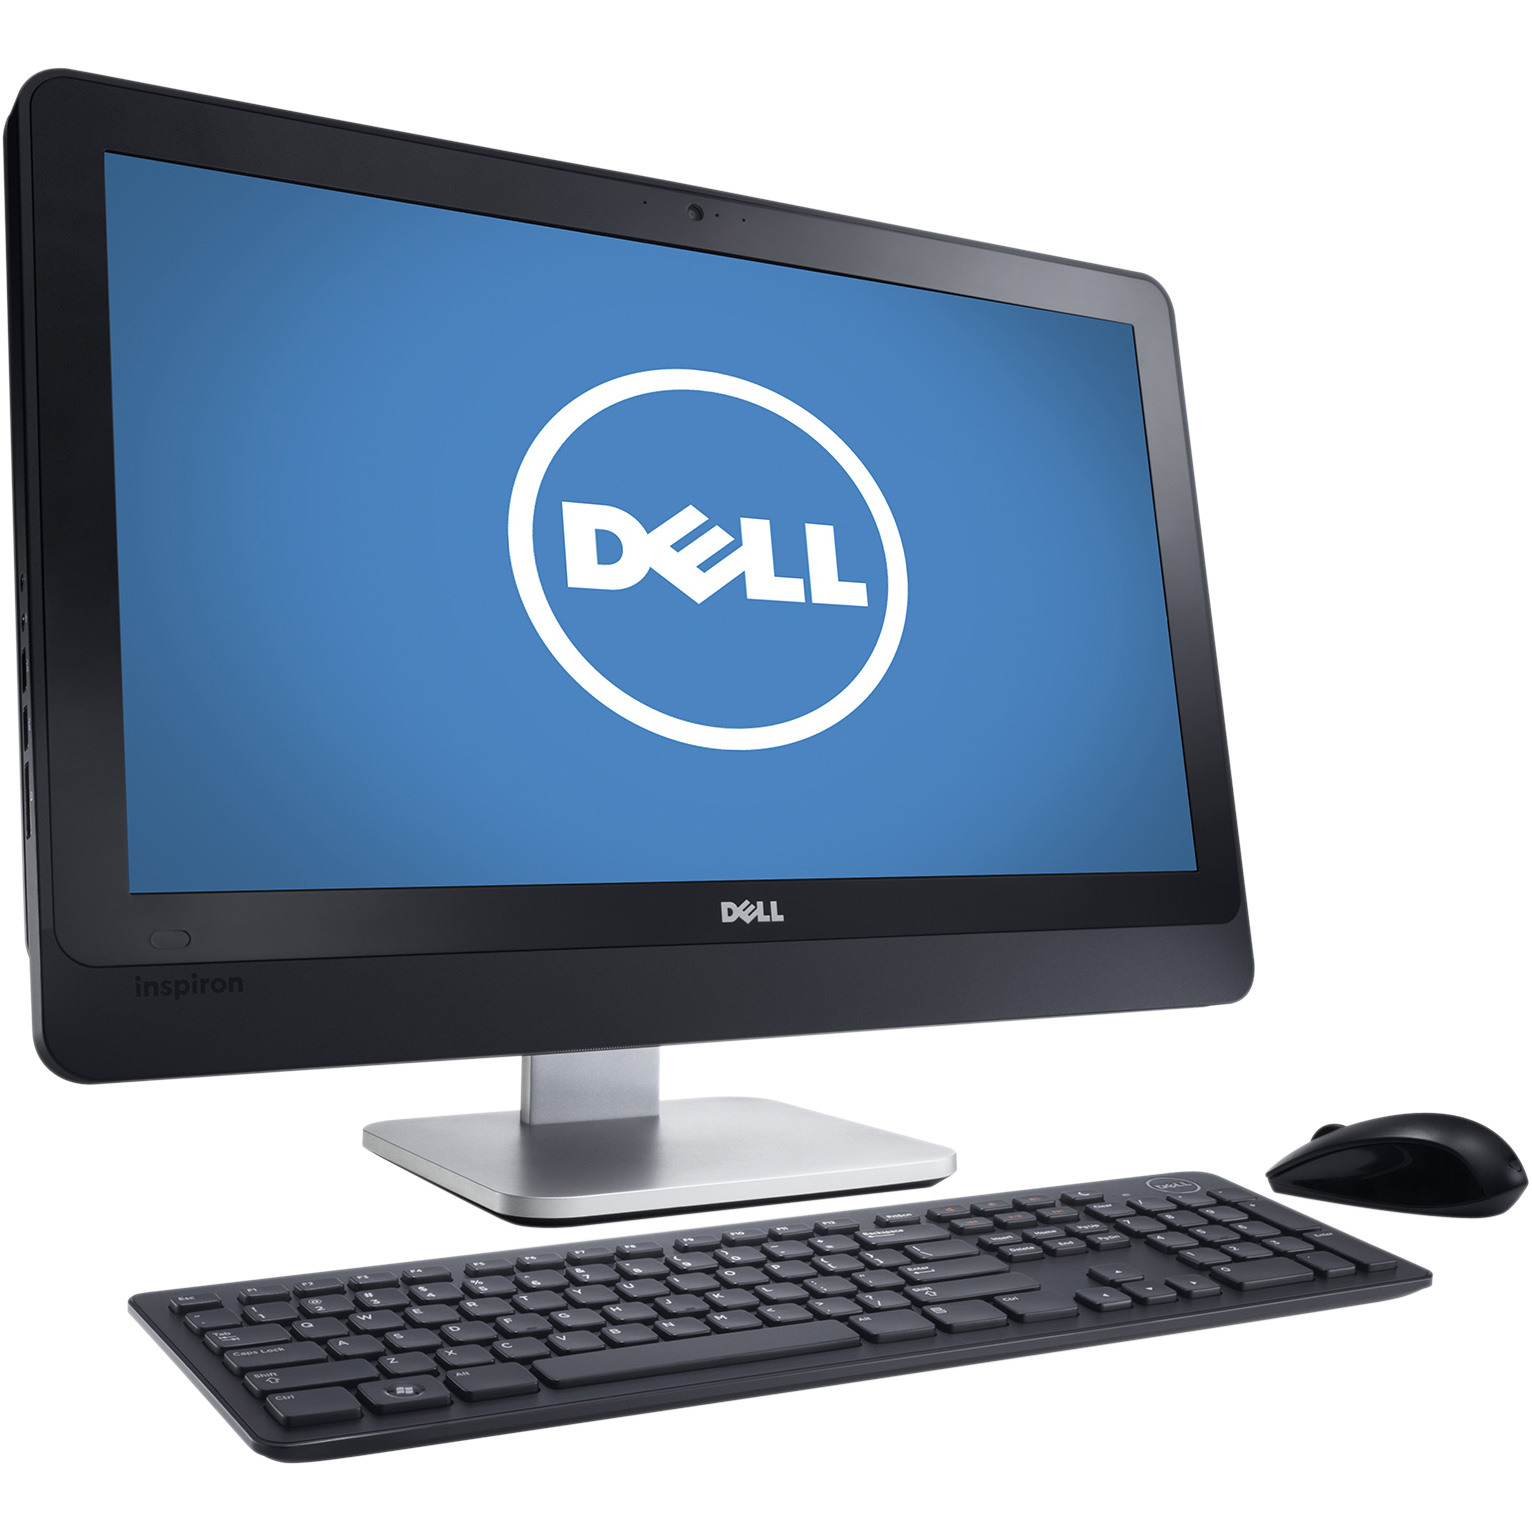 "Dell Inspiron One Intel® Pentium G2020 4GB DDR3 Desktop Computer 2330 w/ 23"" 1080p Full HD Touchscreen"